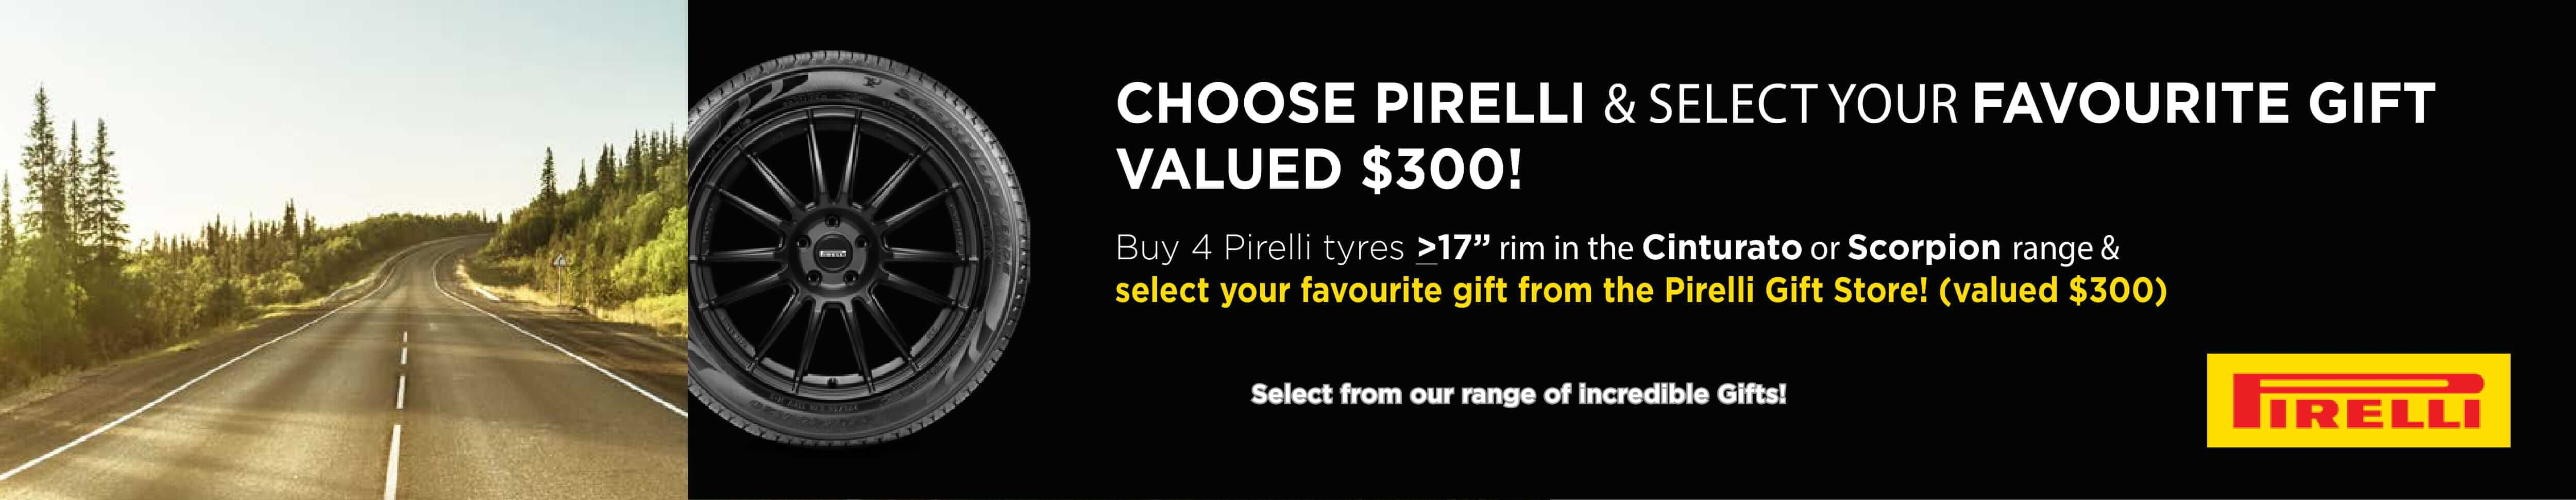 Choose Pirelli and select your favourite gift valued $300!